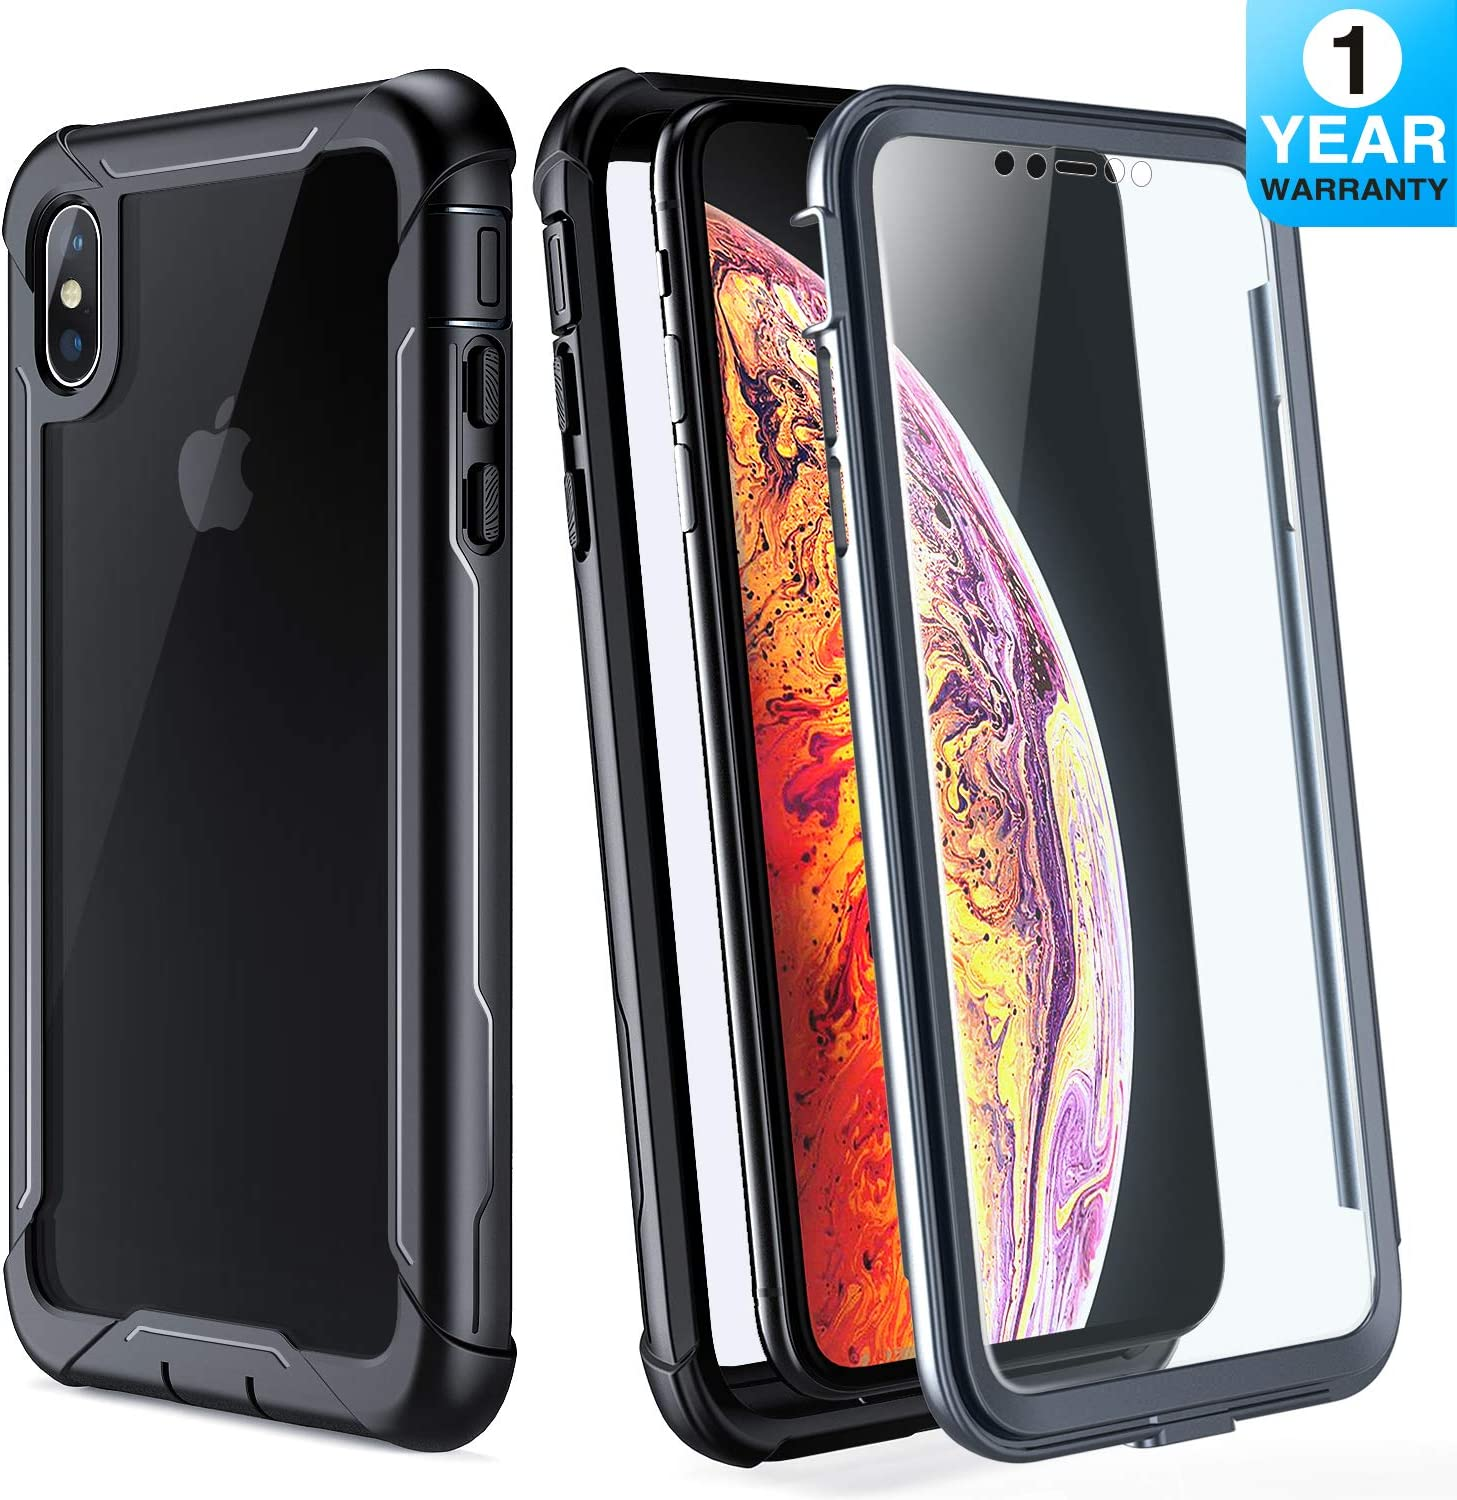 iPhone Xs Max Case - FITFORT Full Body Rugged Case with Built-in Touch Sensitive Anti-Scratch Screen Protector, Ultra Thin Clear Shock Drop Proof Impact Resist Extreme Durable Protective Cover